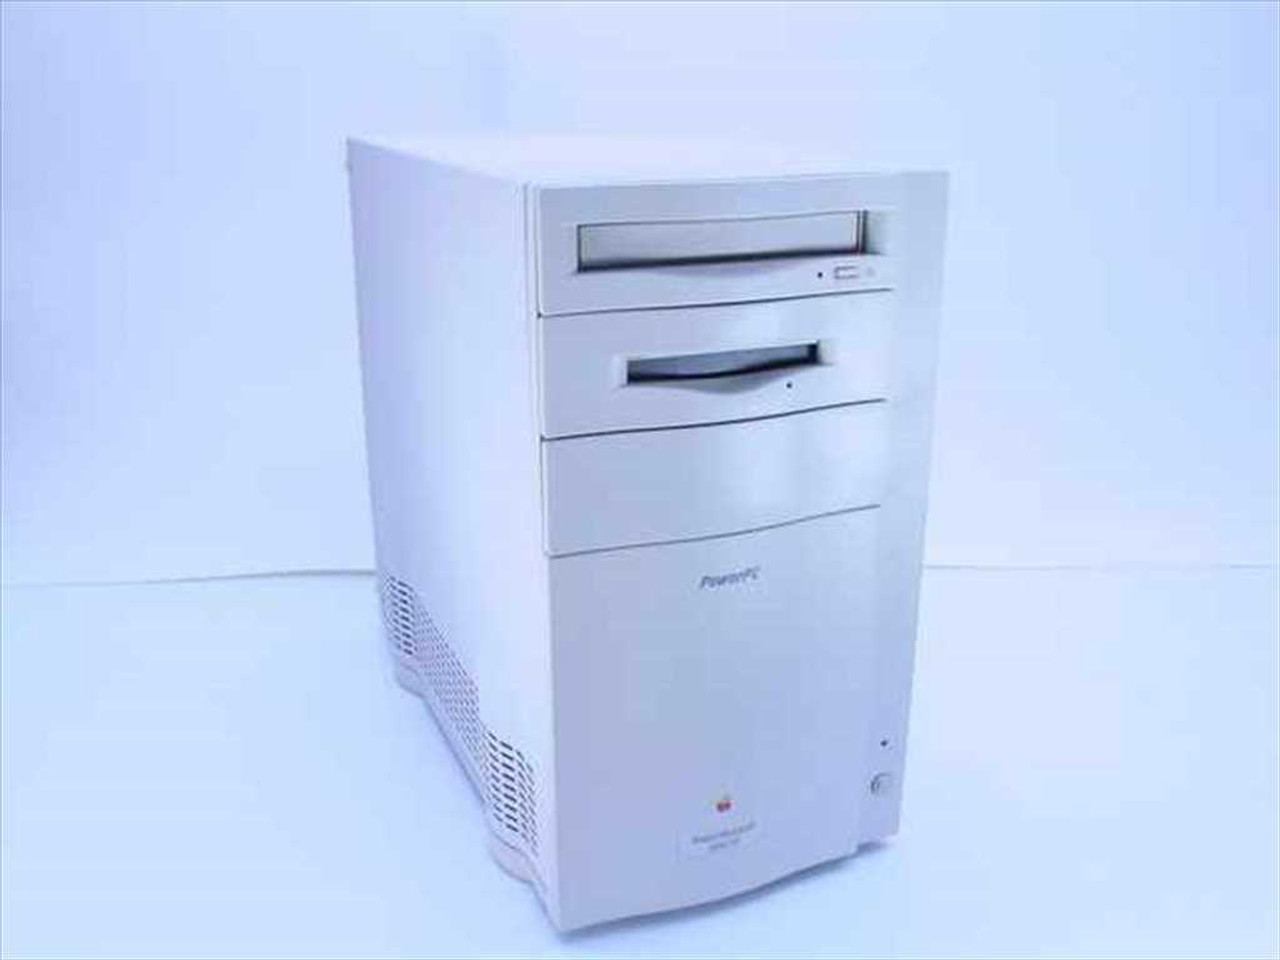 Apple M3409 Power Mac 8500/150...